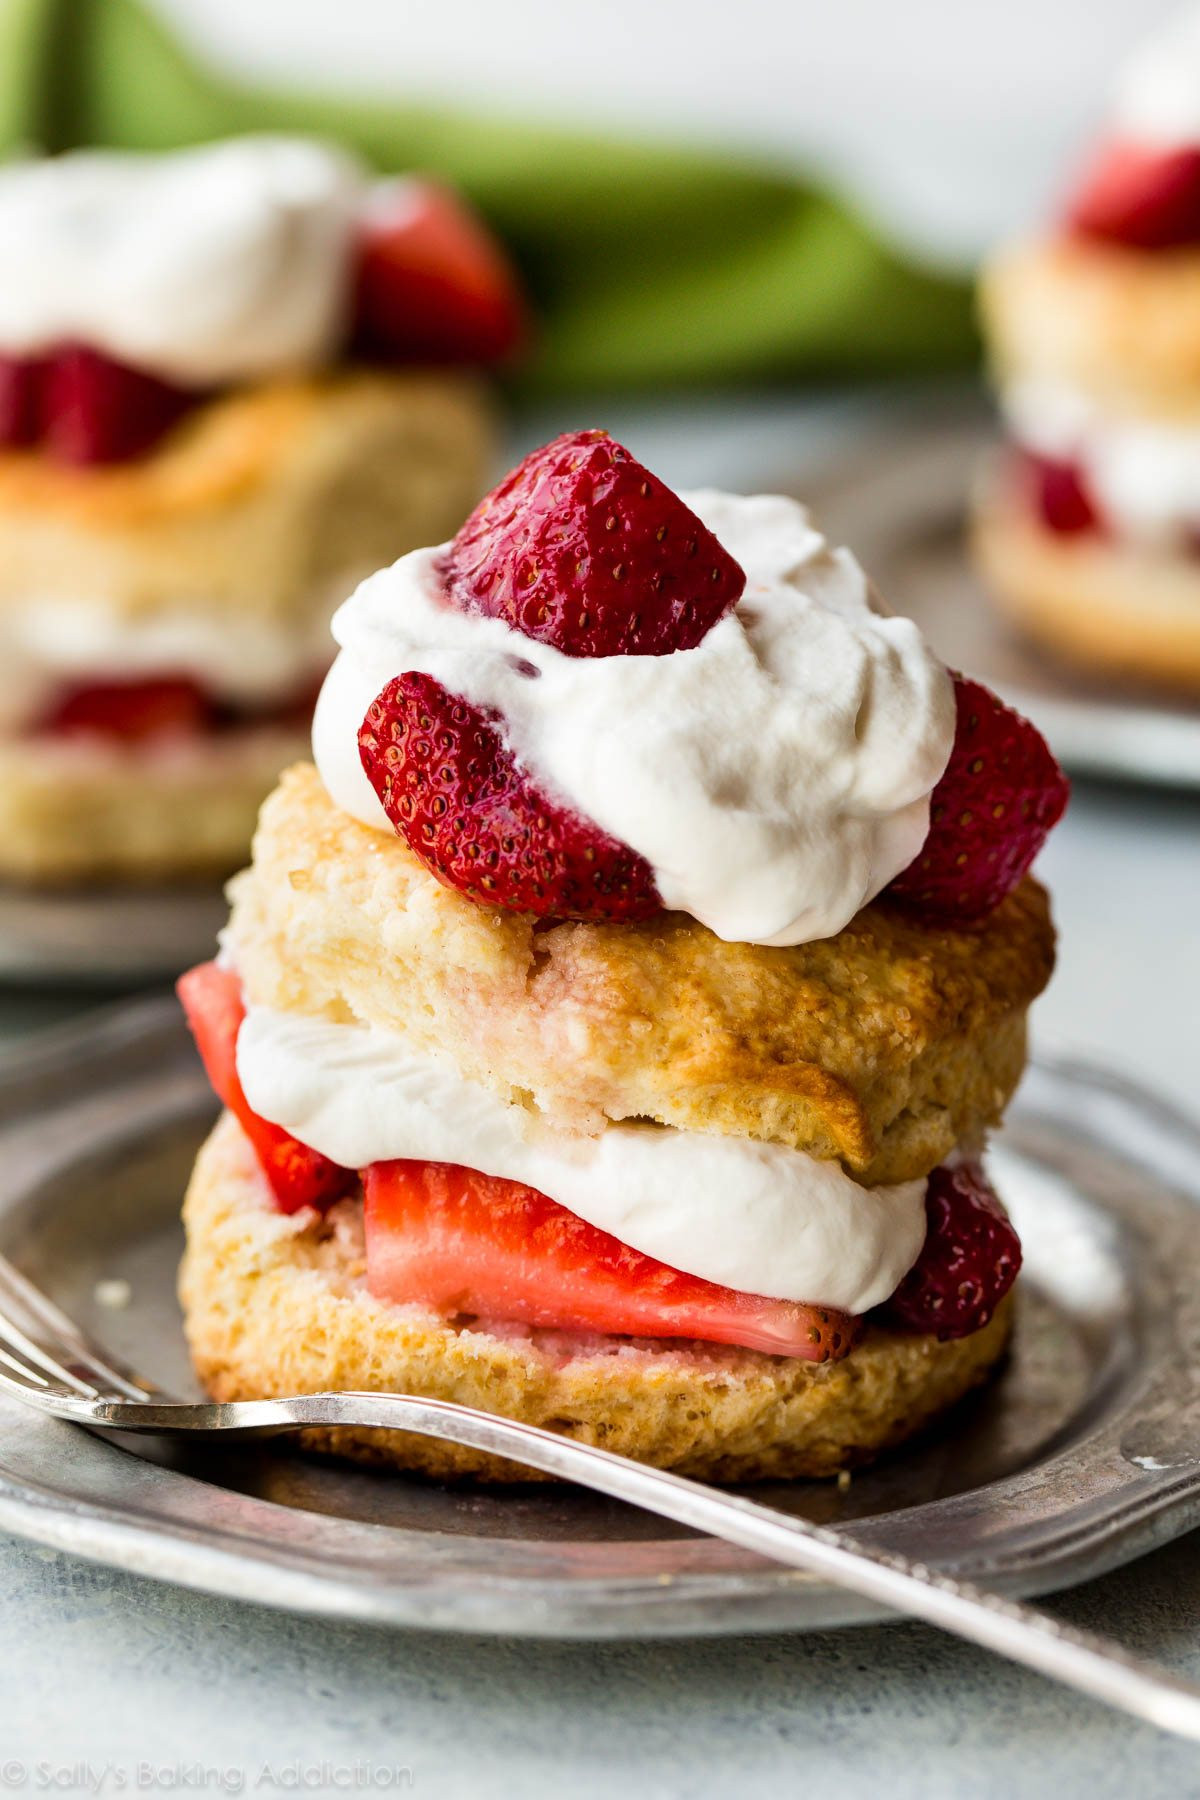 Strawberry Shortcake Biscuits Recipes  Easy Homemade Strawberry Shortcake Sallys Baking Addiction